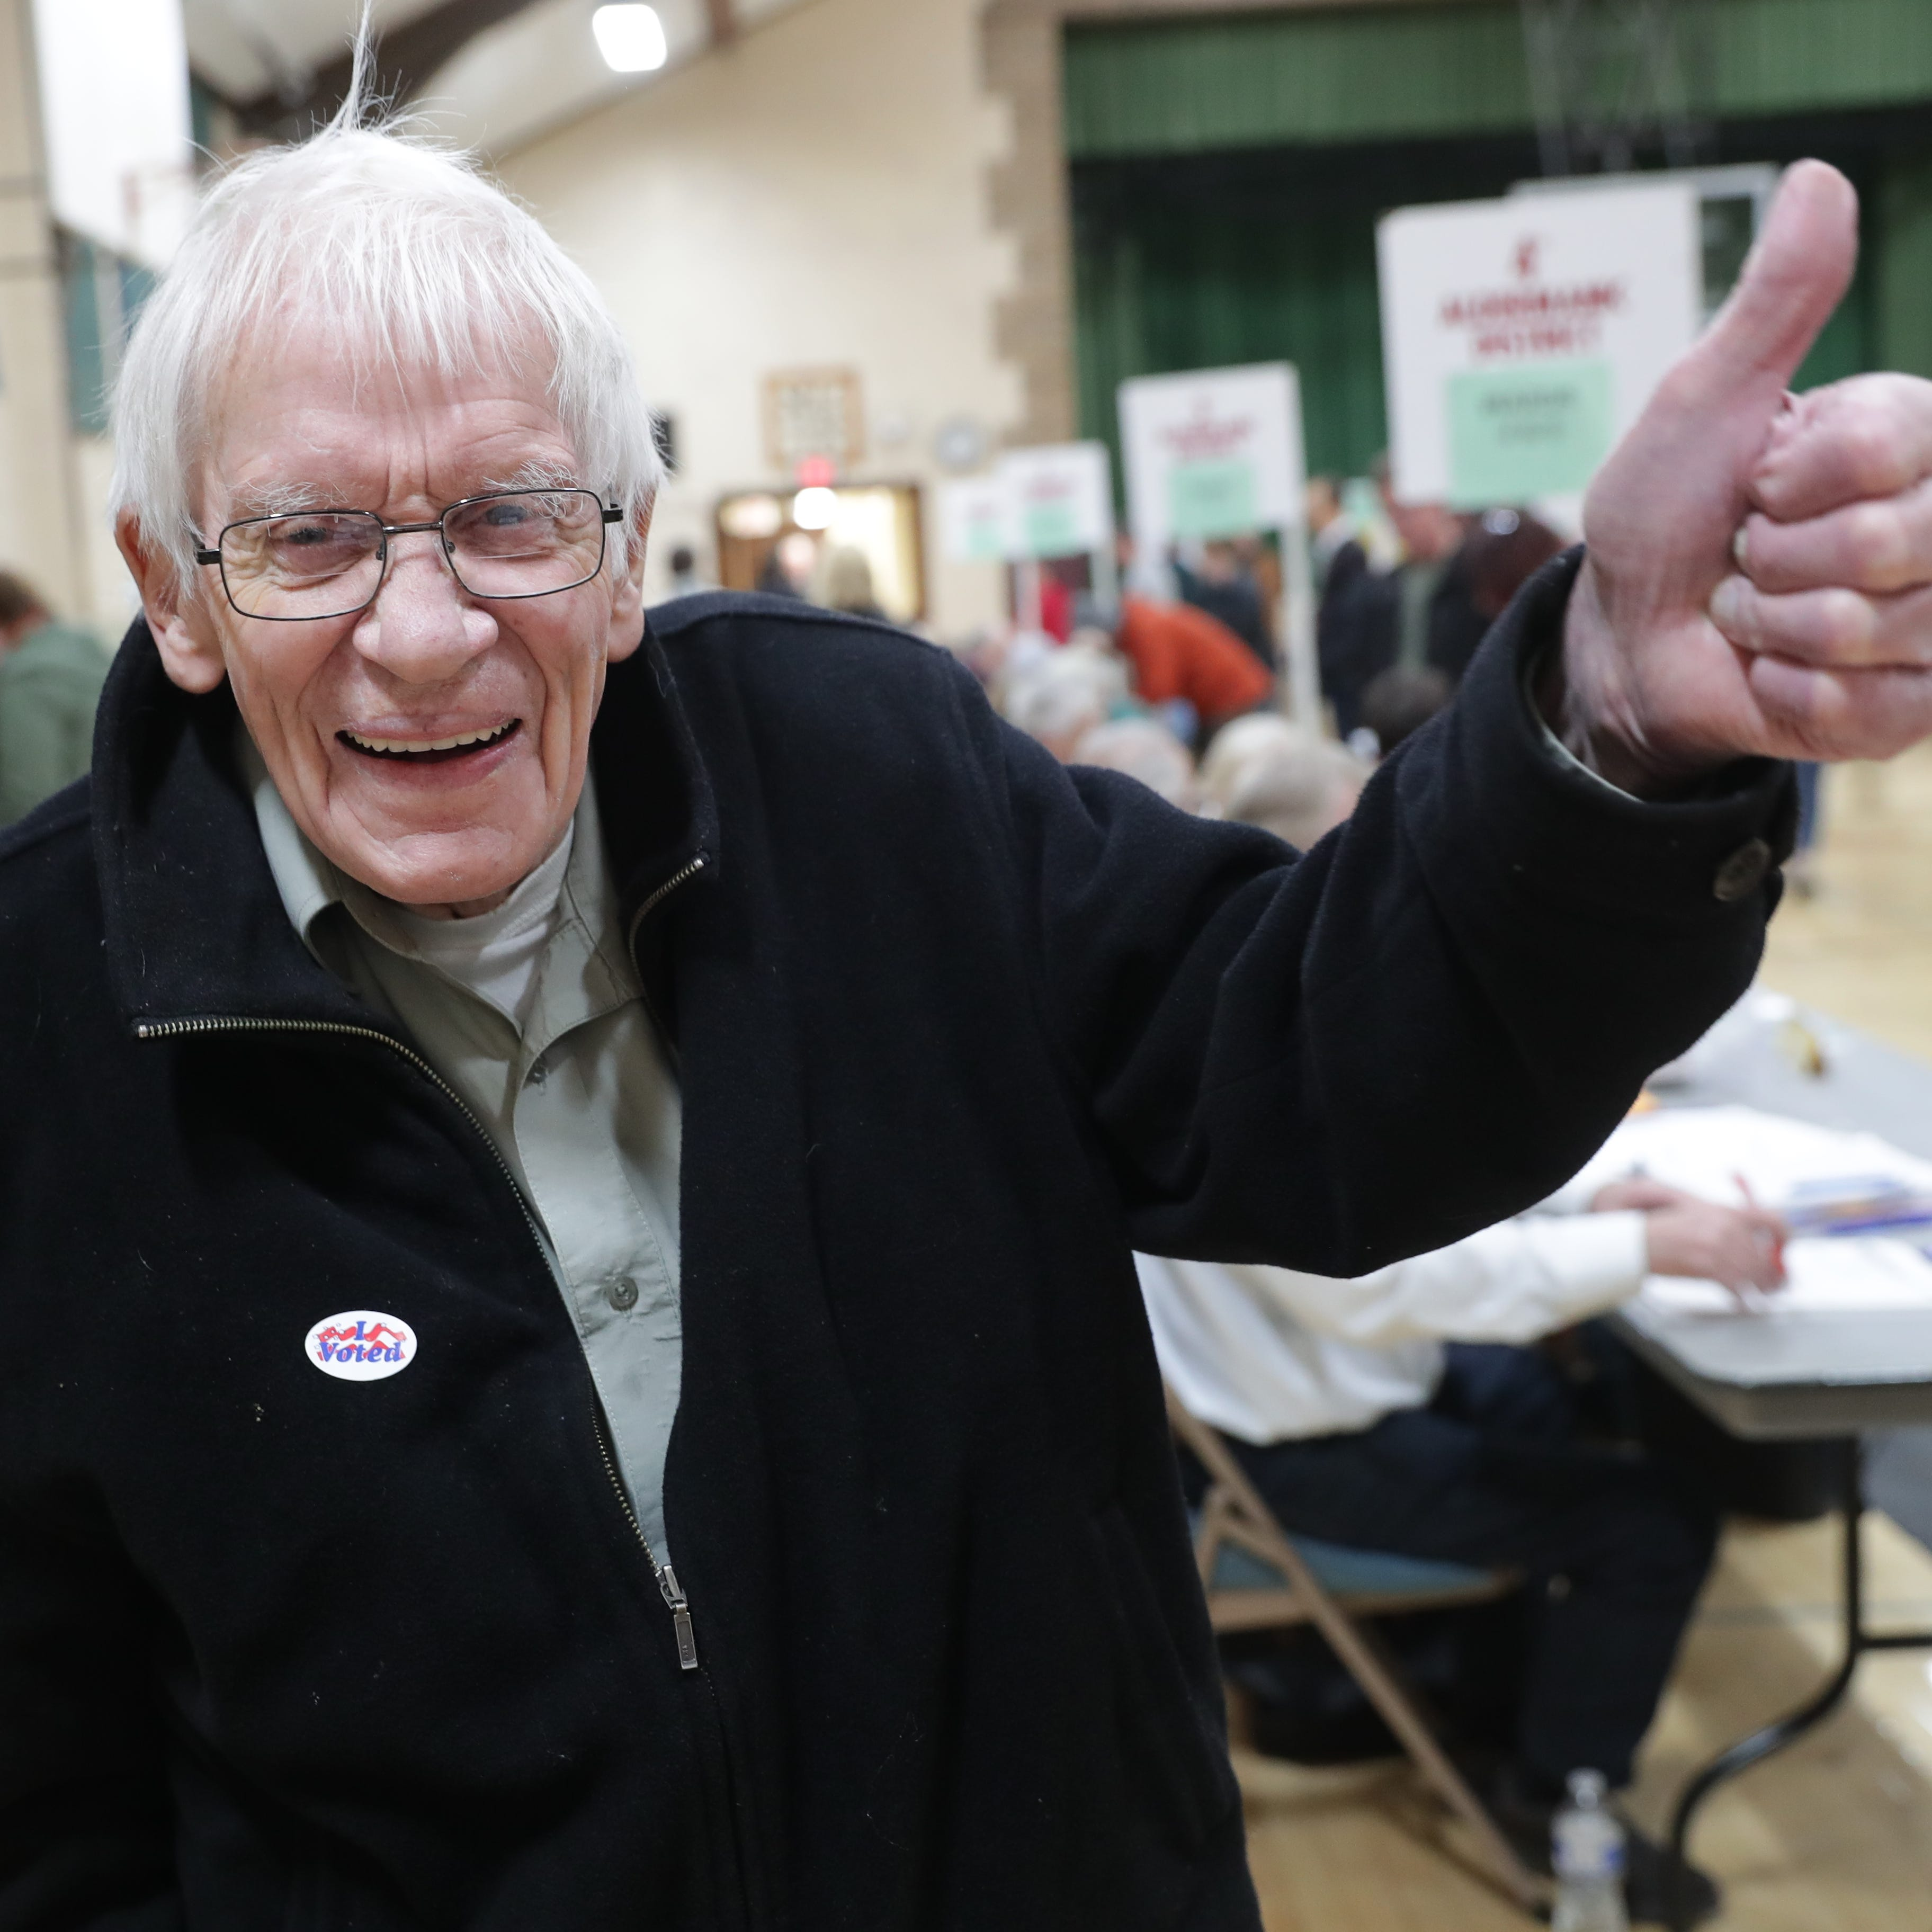 An 83-year-old determined to vote, Wisconsin wildlife, and women in brewing; here's your weekly Be Wisconsin update